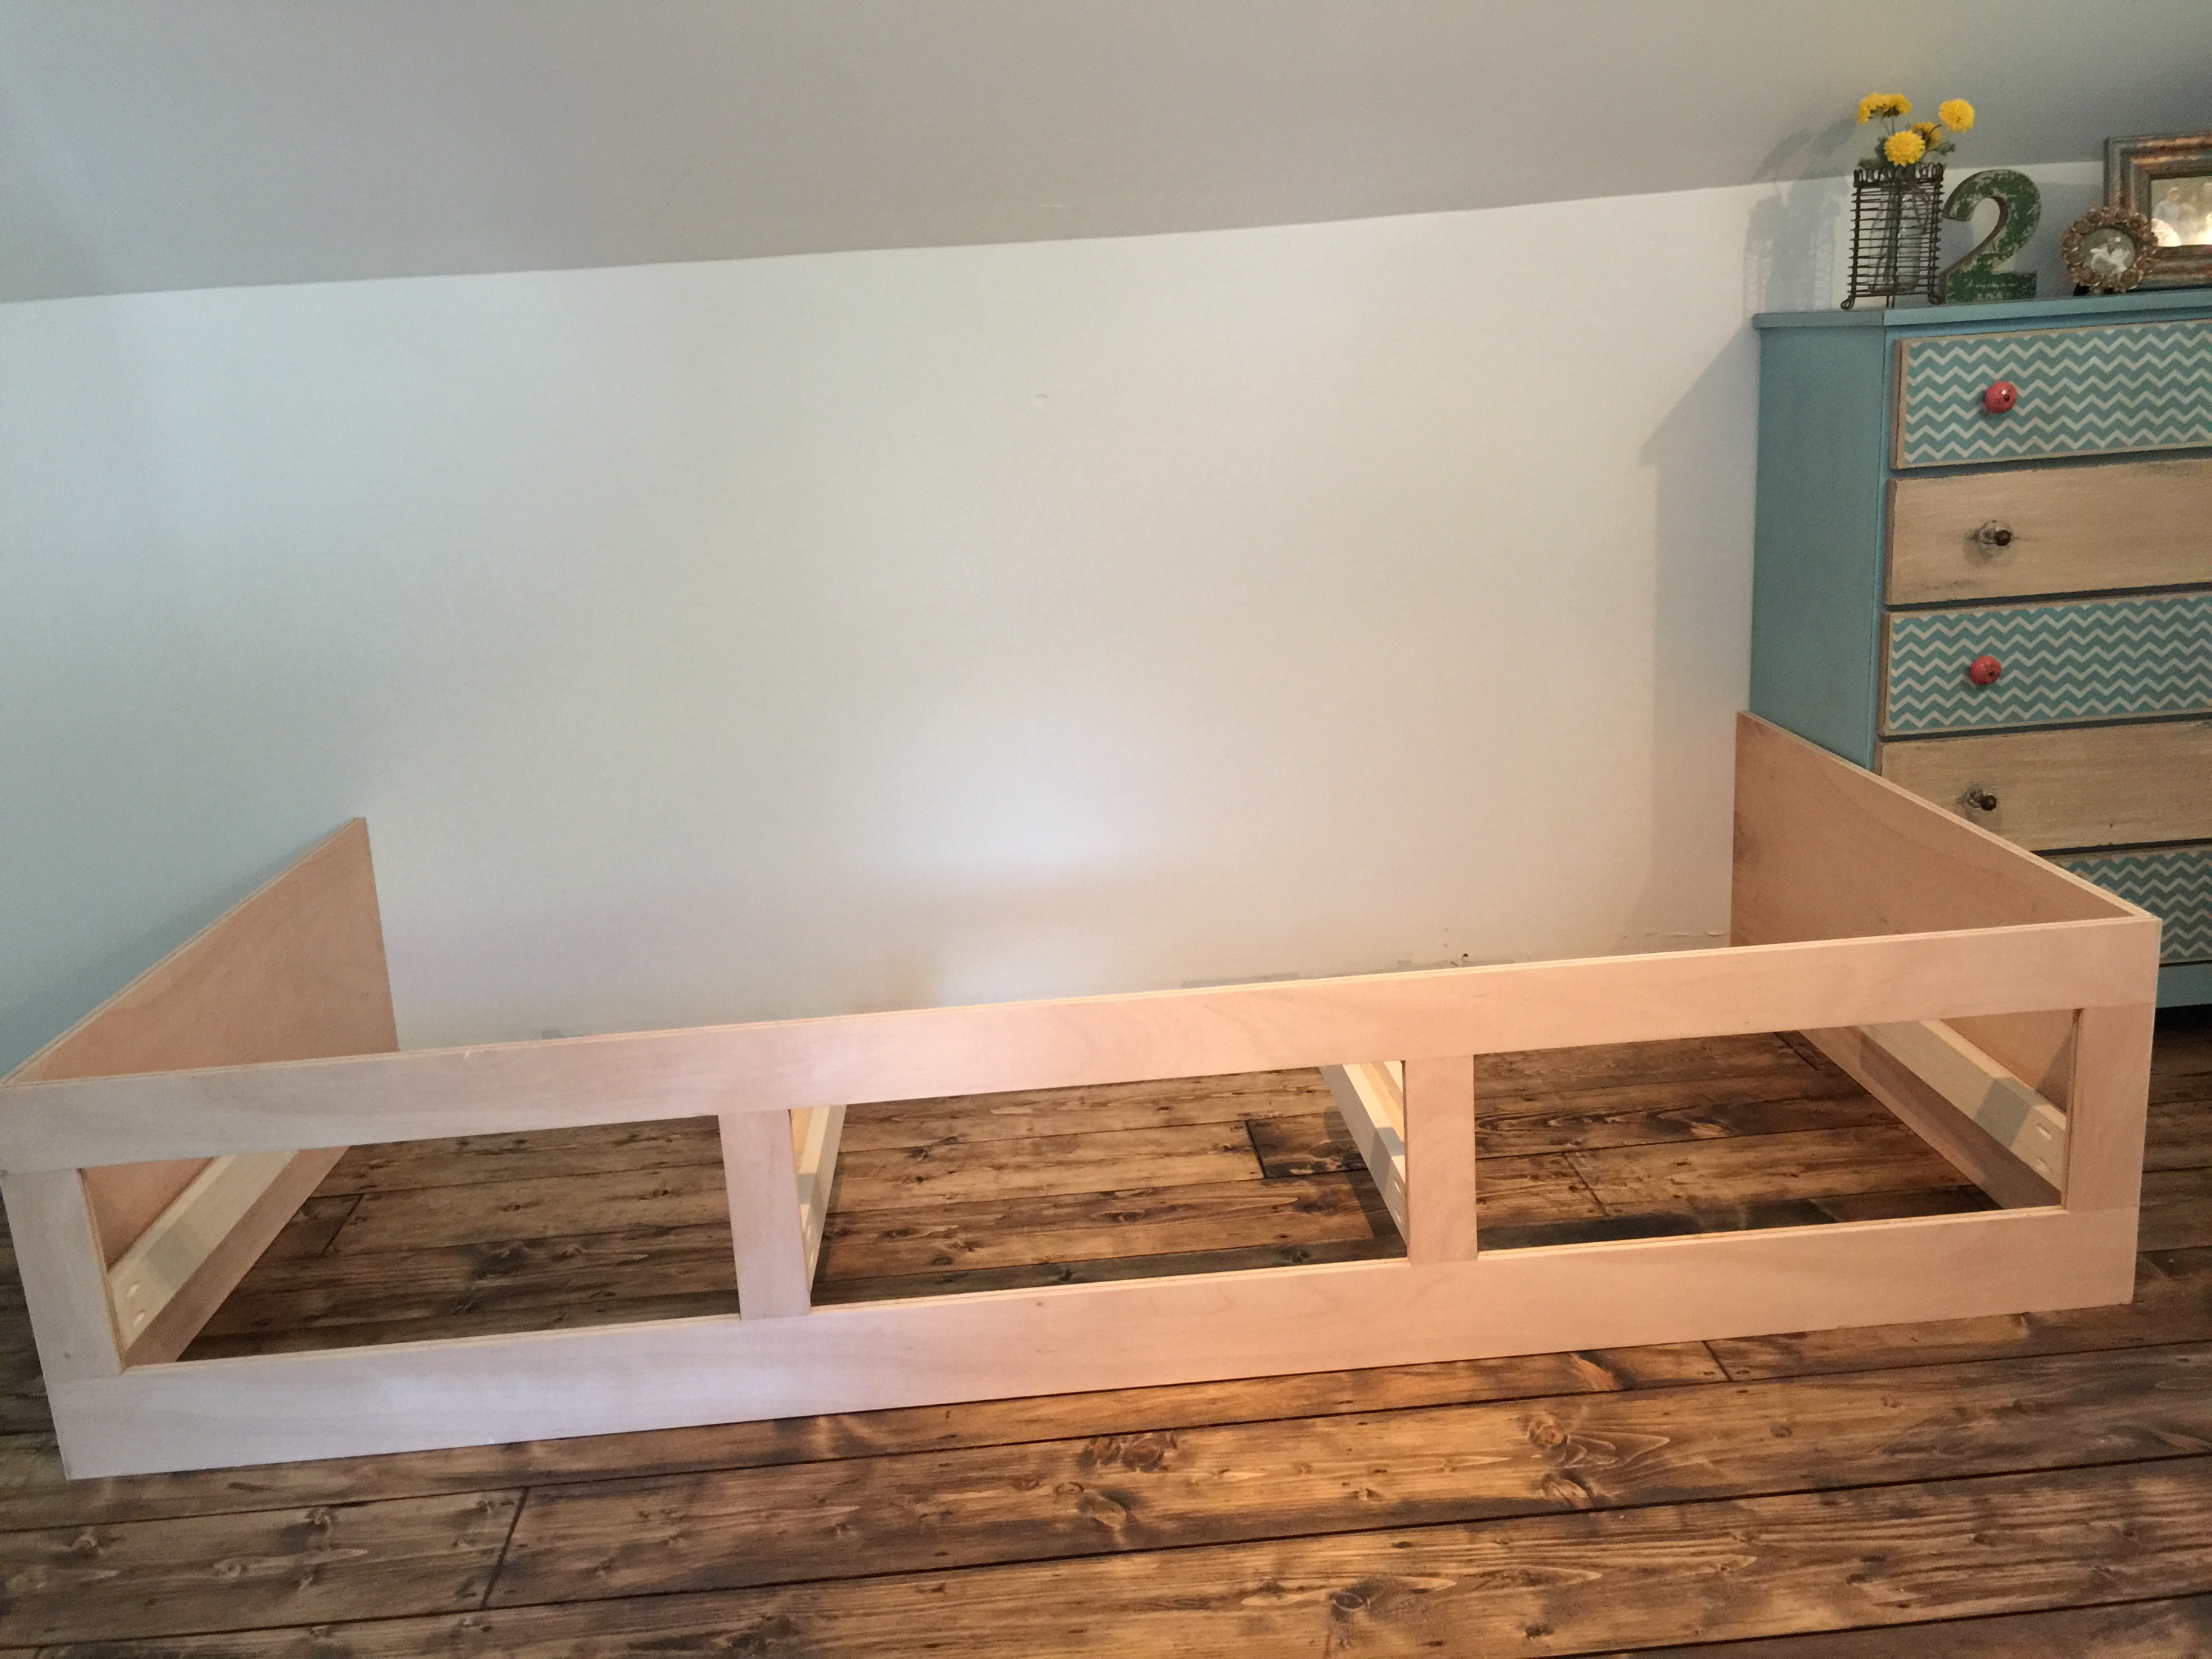 Built In Bed Nook Beautiful Built-In Bed Nook with Storage Drawers | Remodelaholic | Bloglovin'